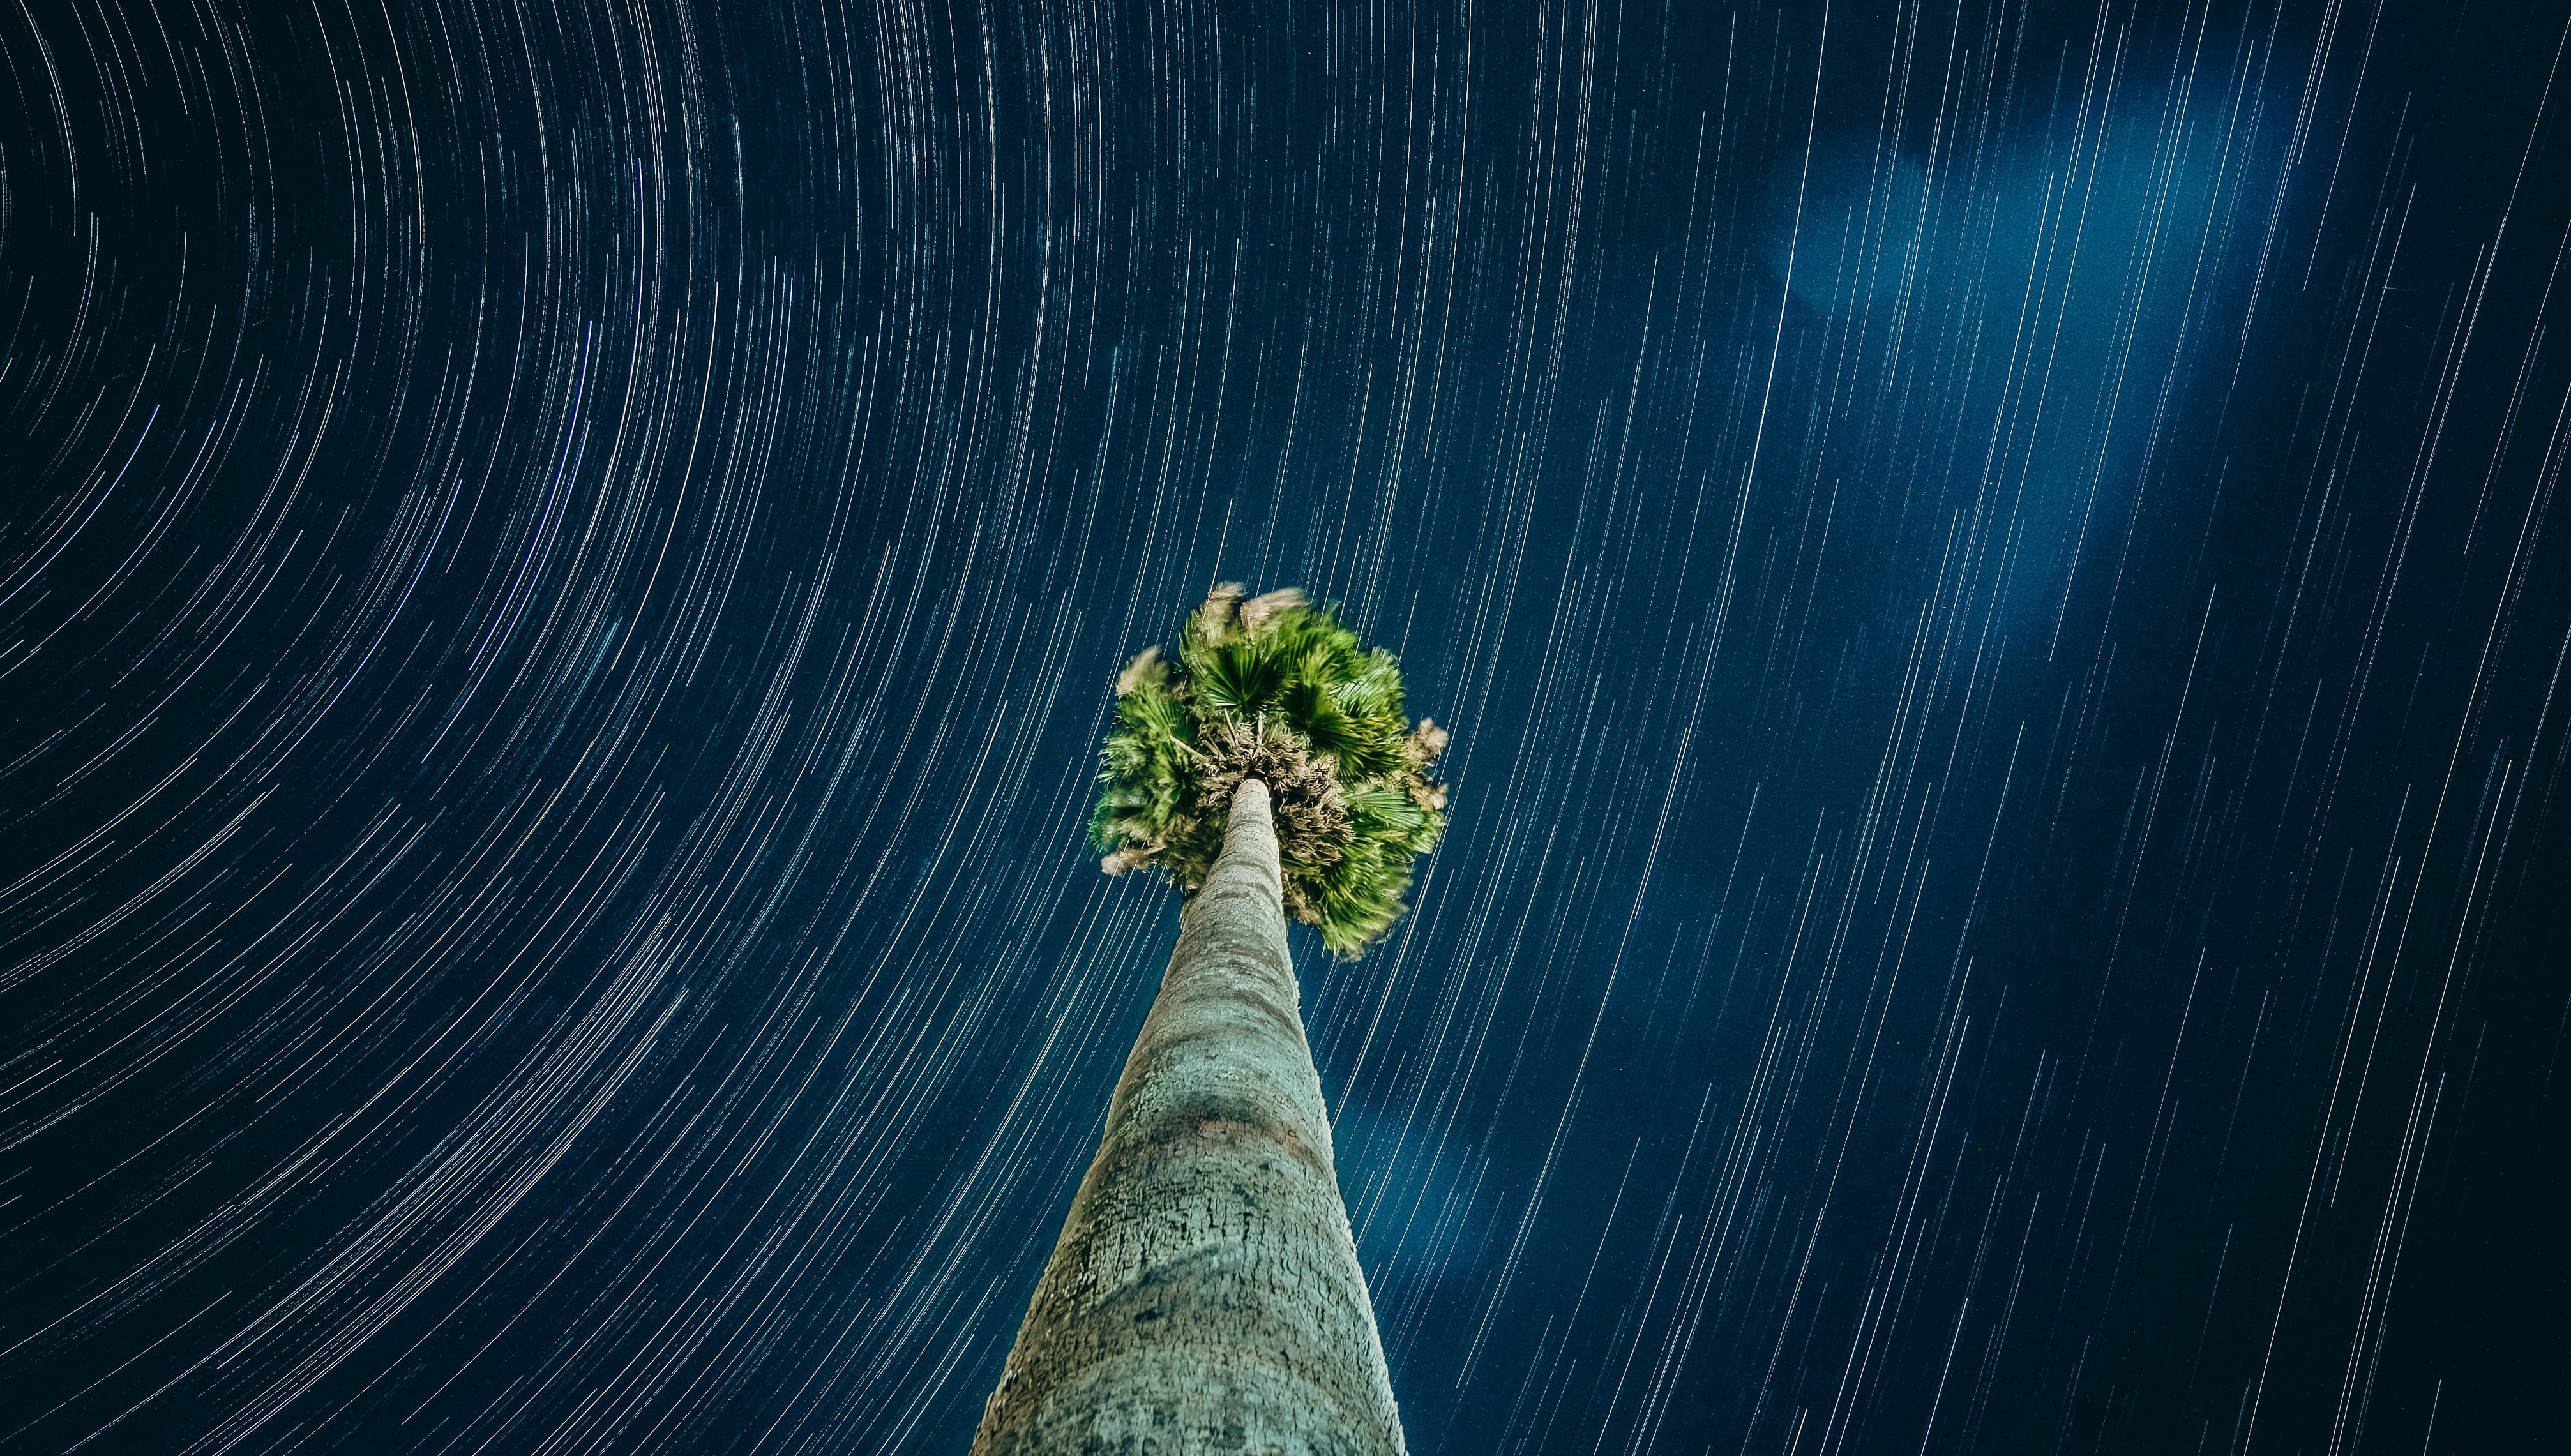 Stars streaking above a stationary palm tree